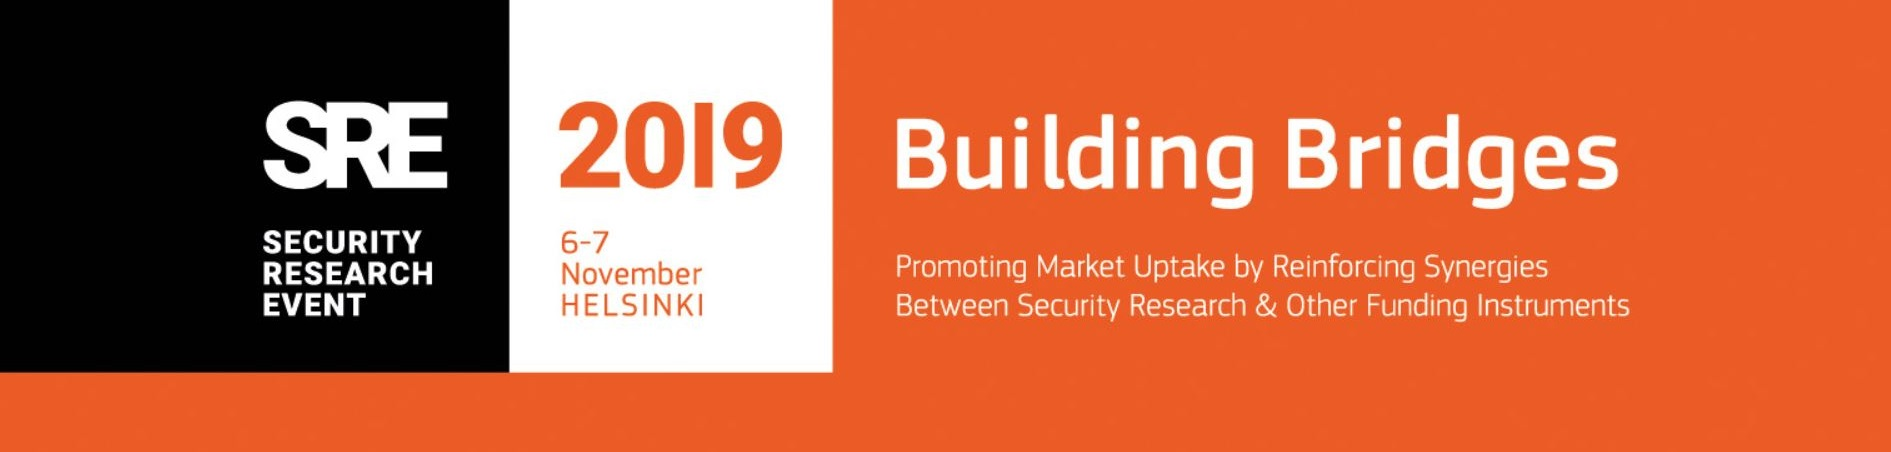 Security Research Event (SRE 2019)